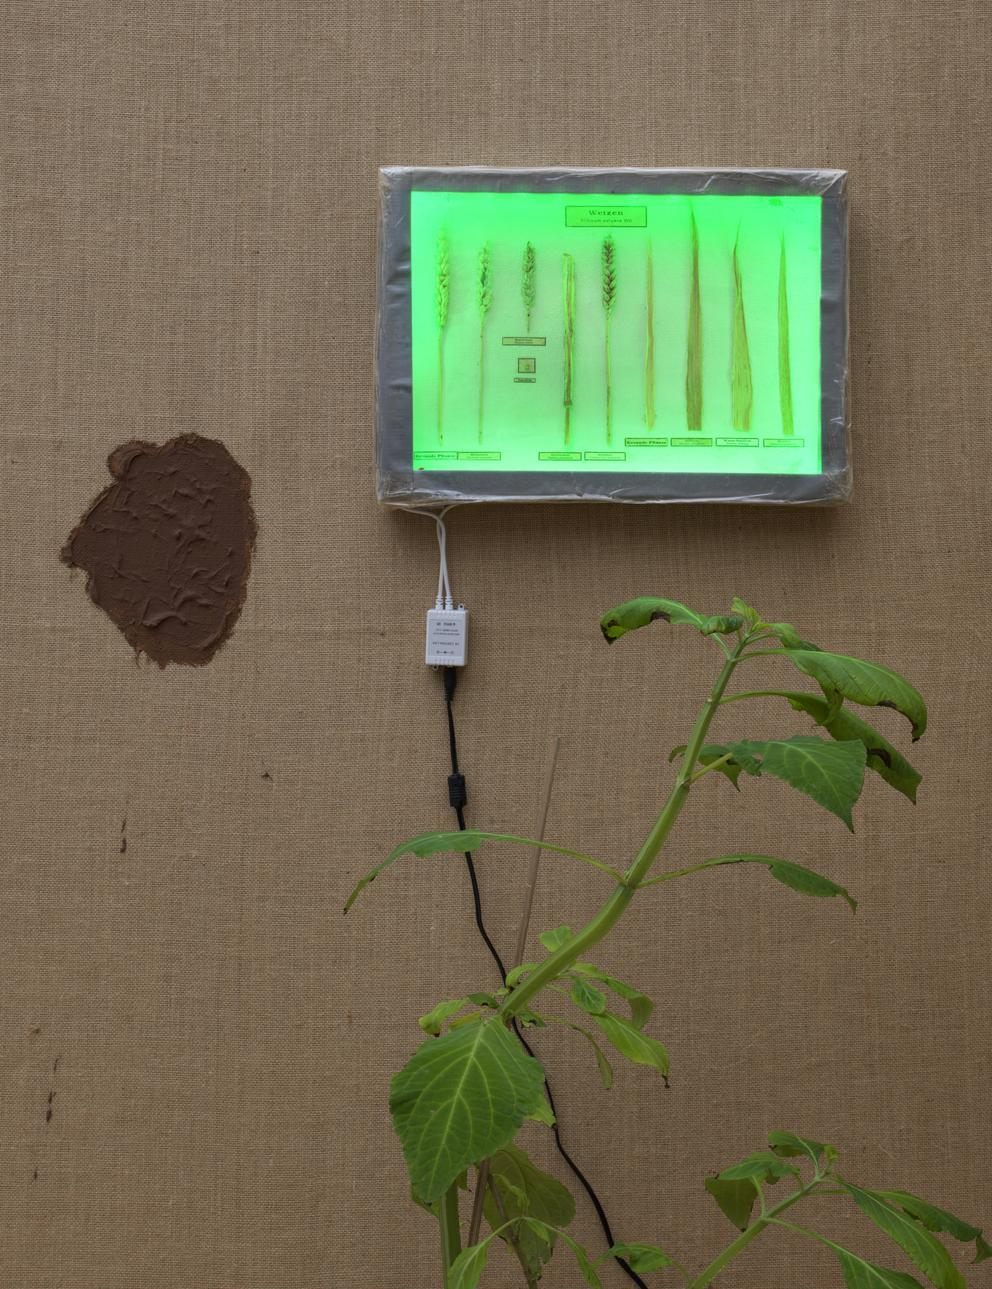 exhibition '℞eformat', PhD research project by Ruchama Noorda